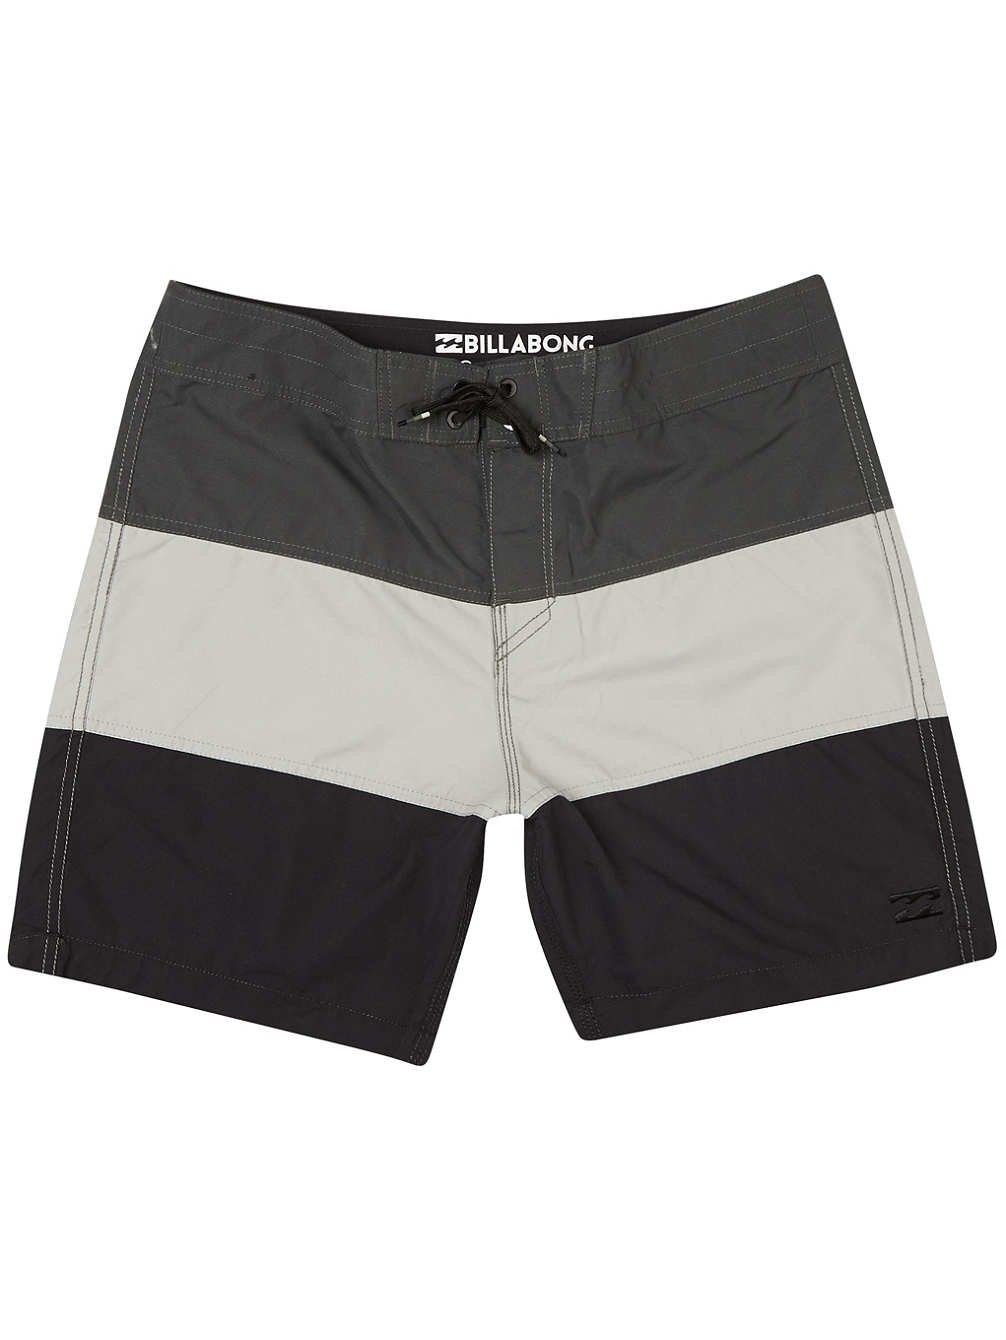 TALLA 33/XX. BILLABONG Tribong OG 17